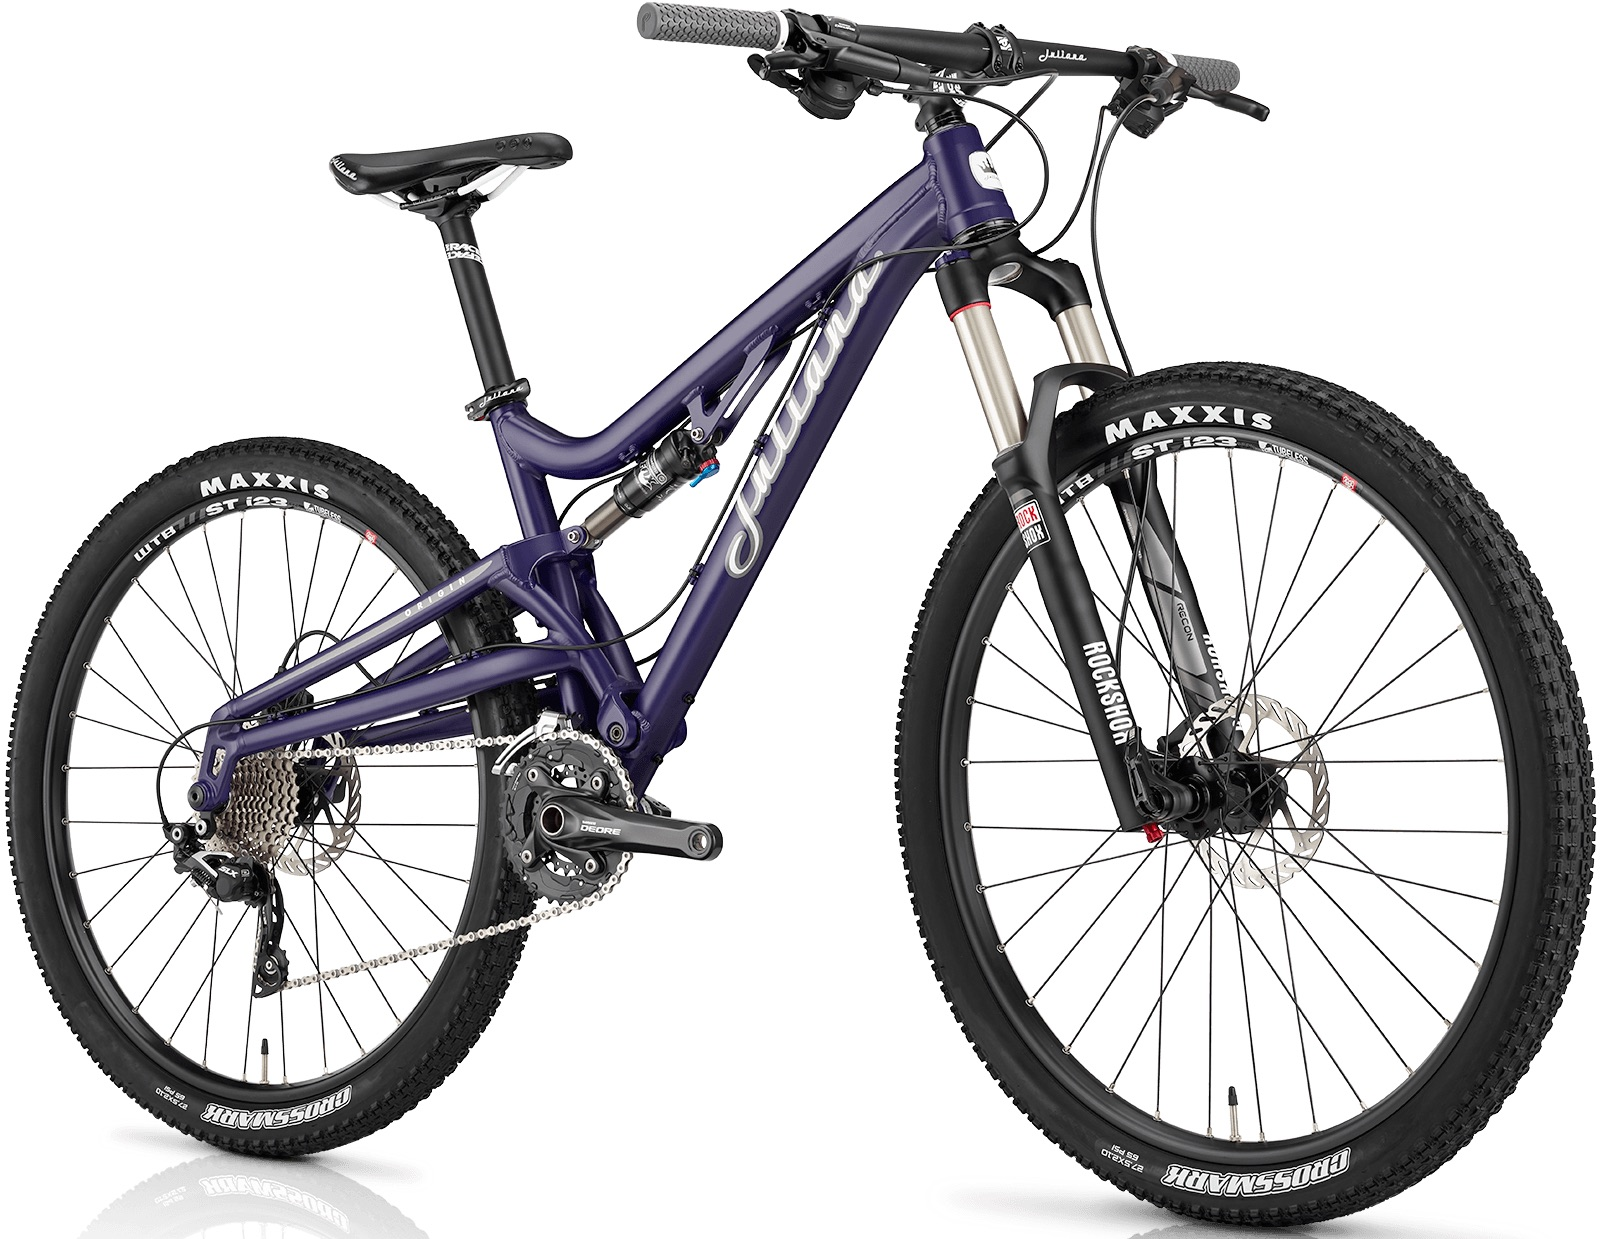 Published November 19, 2014 at 1600 × 1239 in Buyer's Guide: Budget Full  Suspension Mountain Bikes